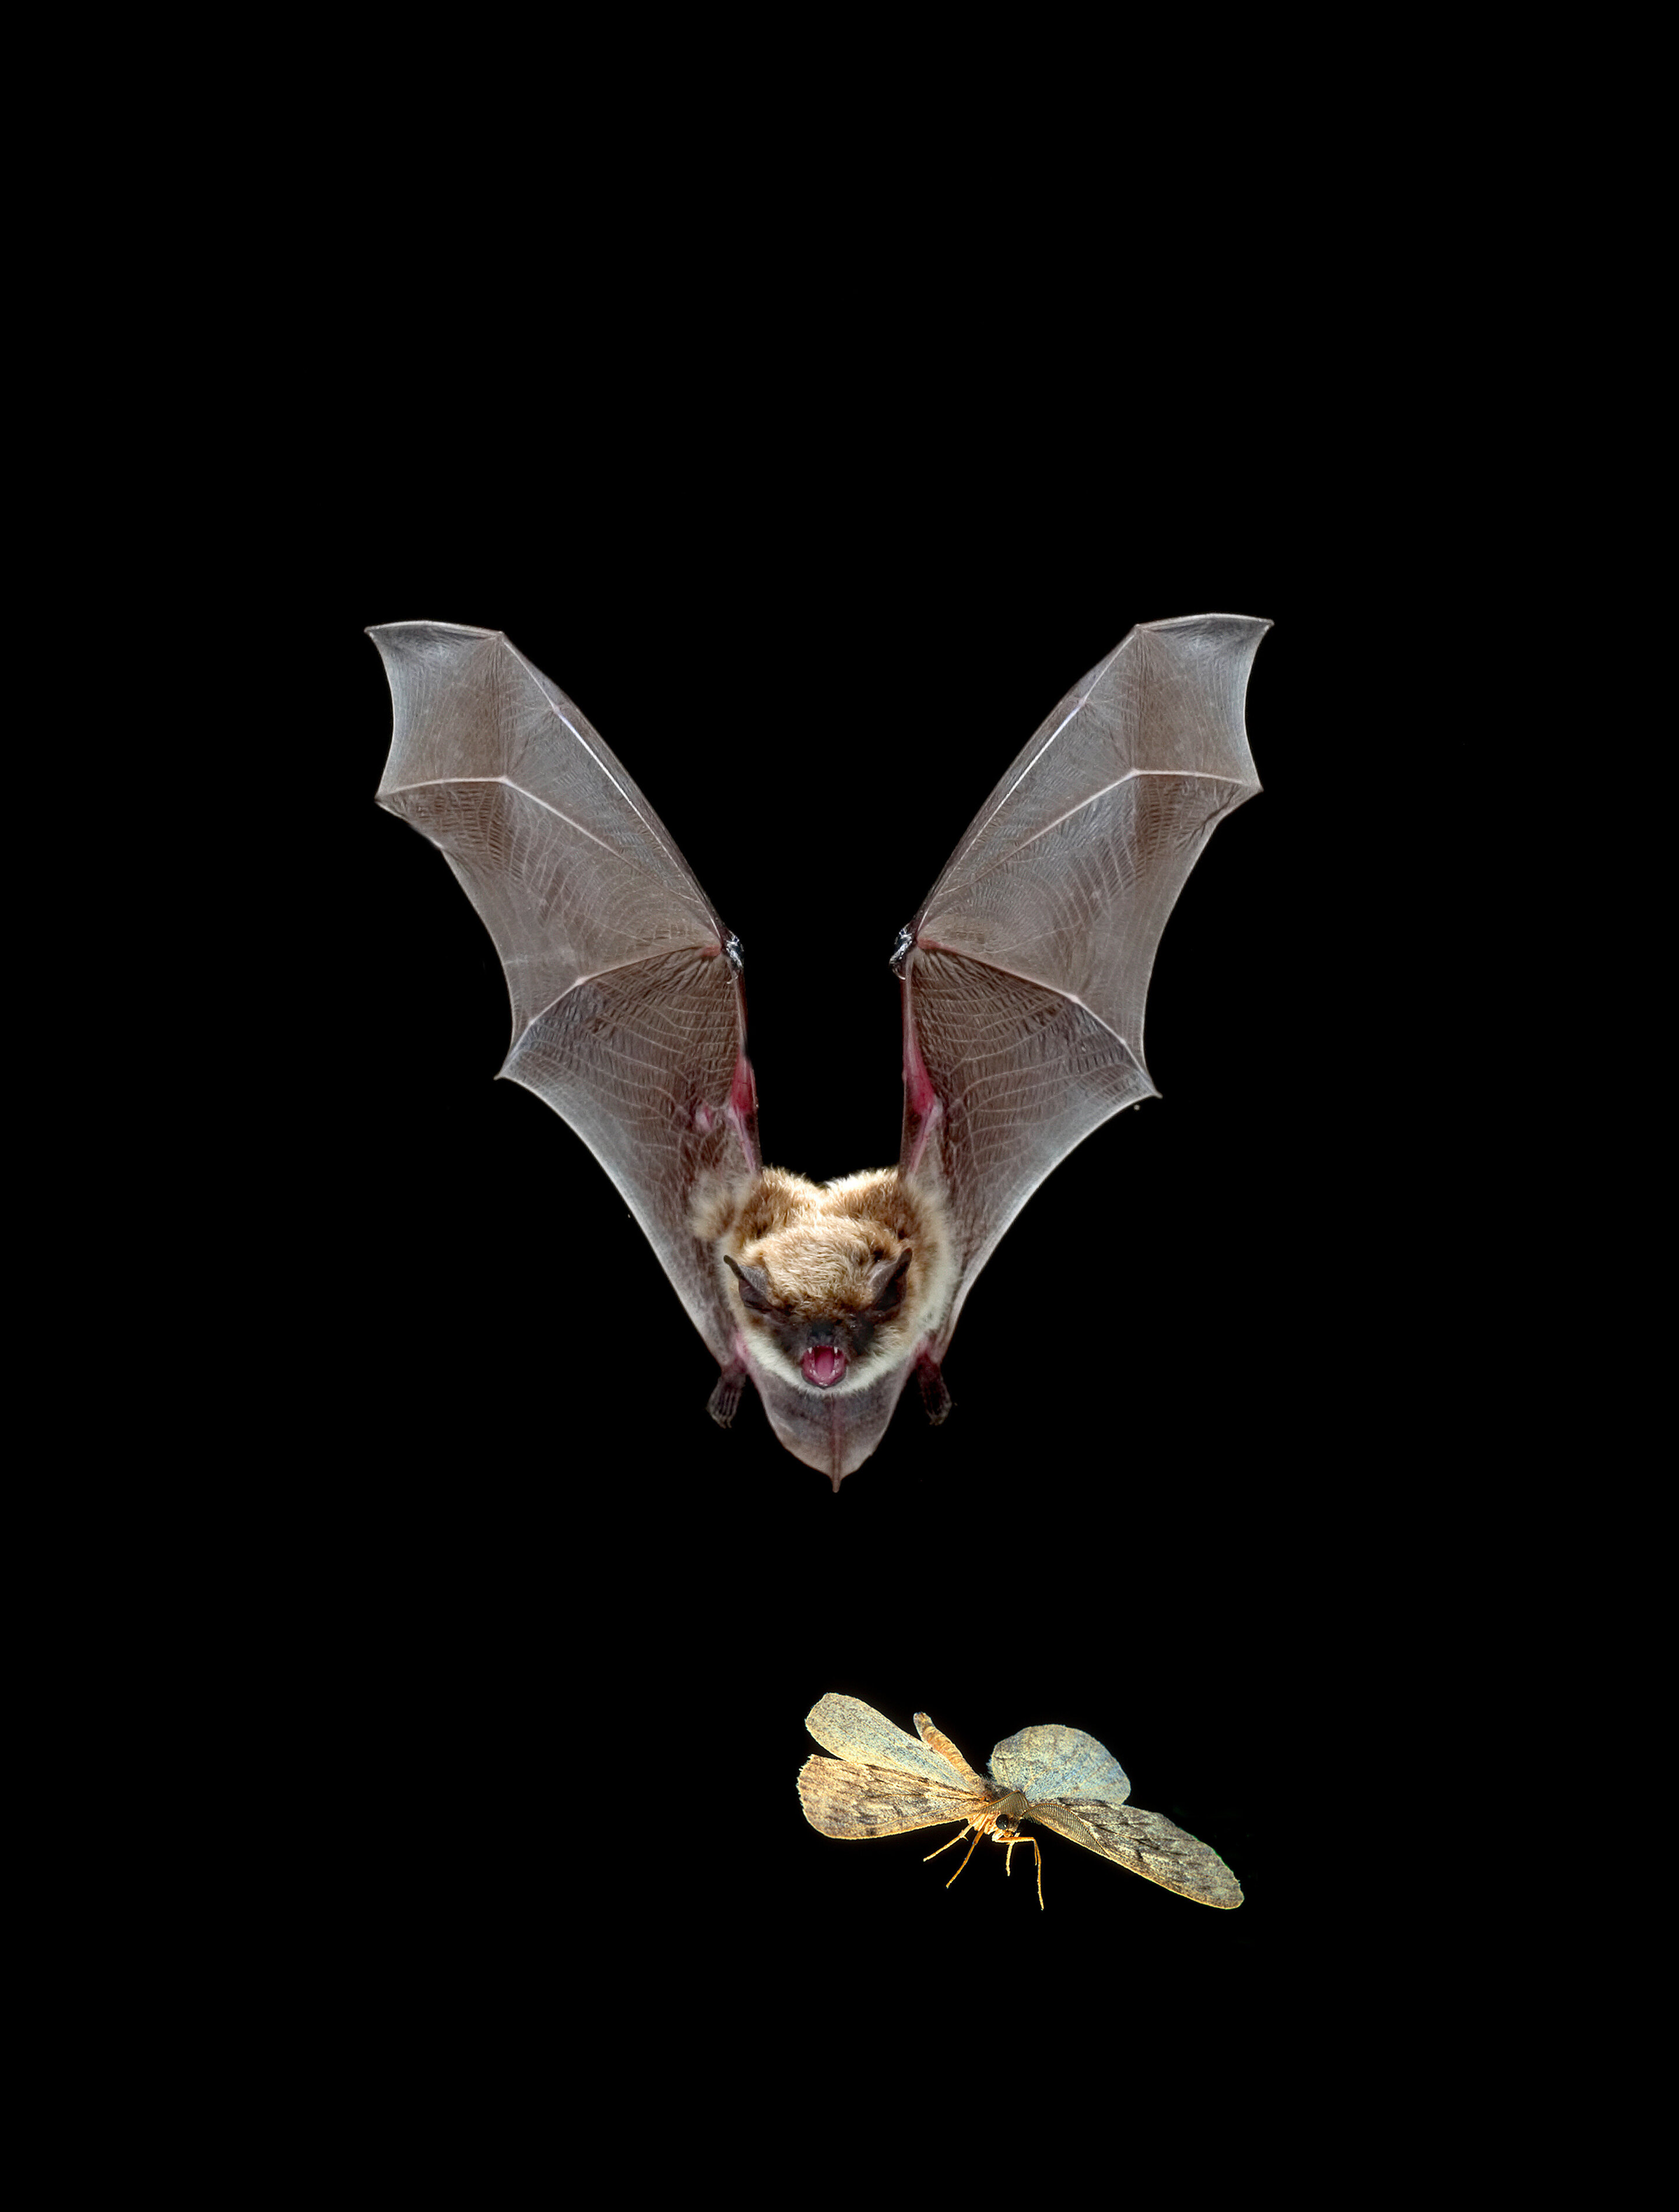 Wildfire May Benefit Forest Bats Study